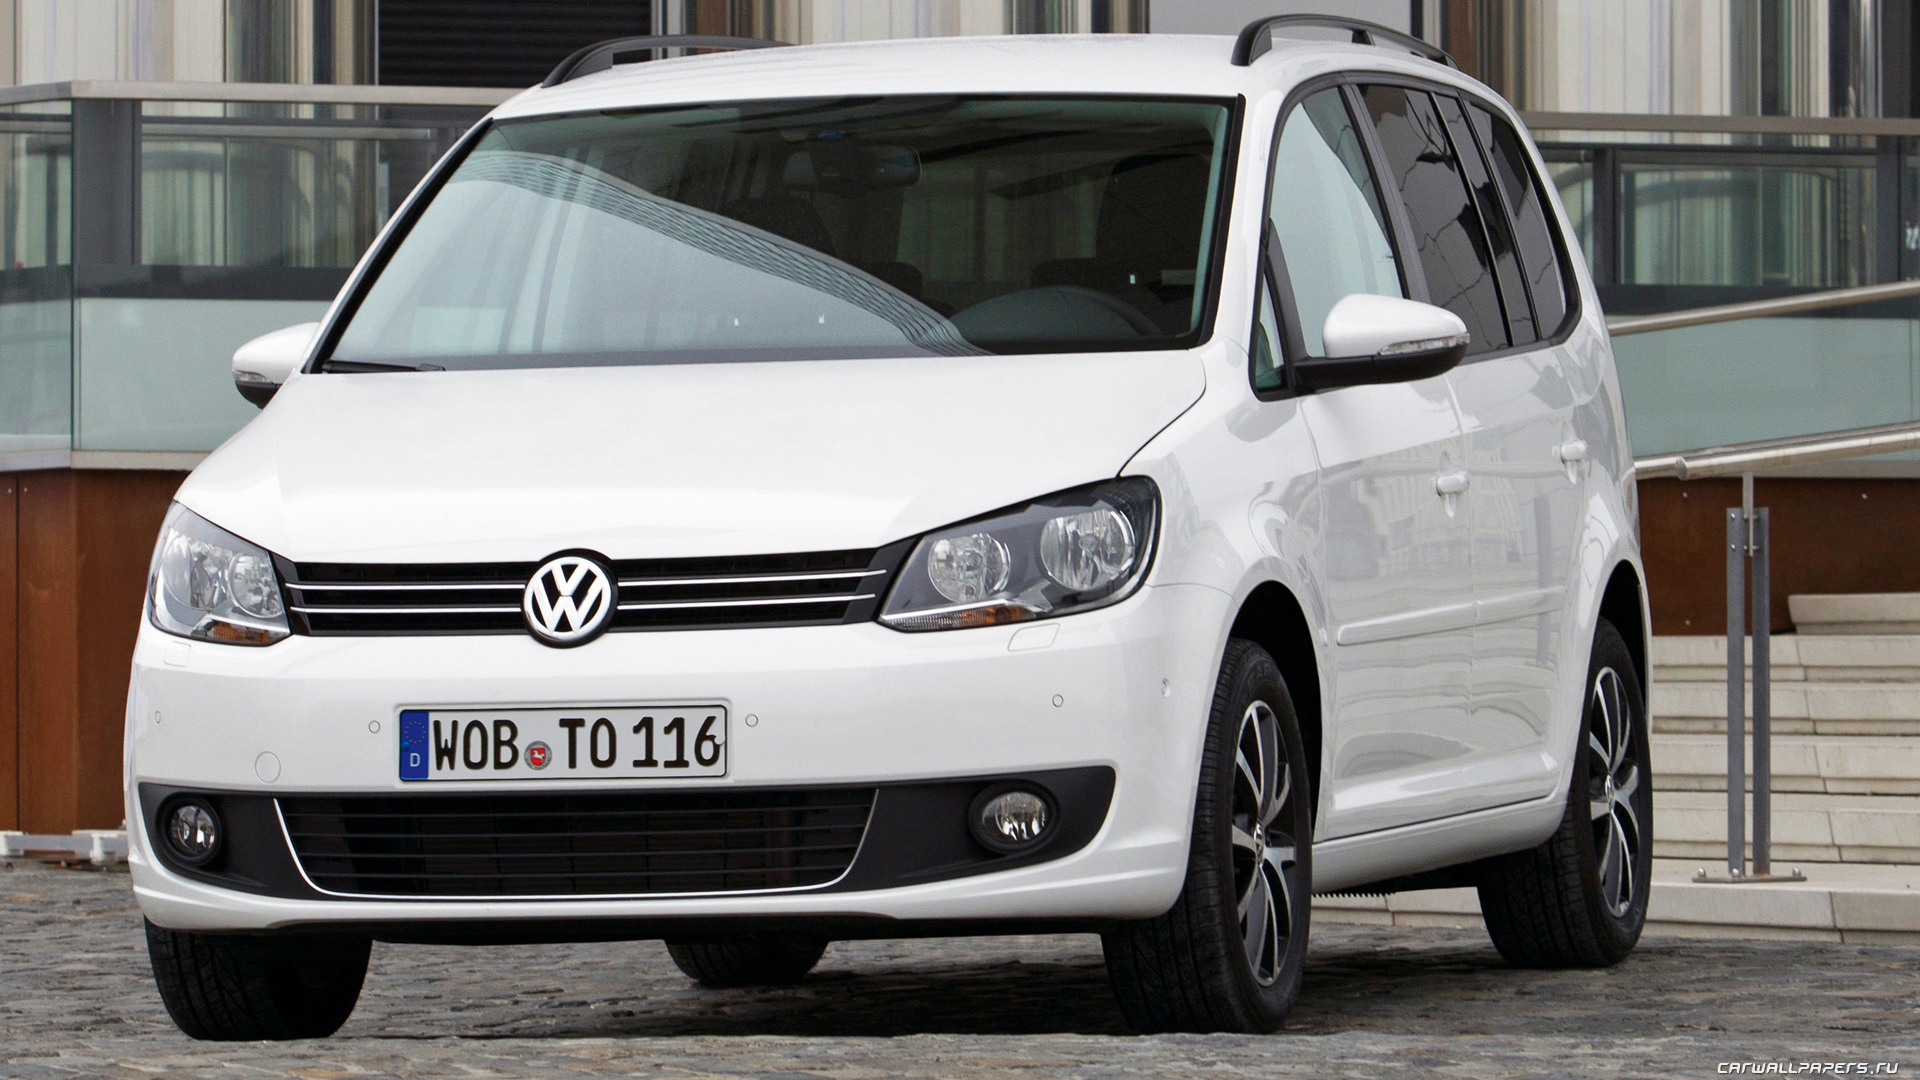 original wallpaper download: Photo of a car Volkswagen Touran - 1920x1080